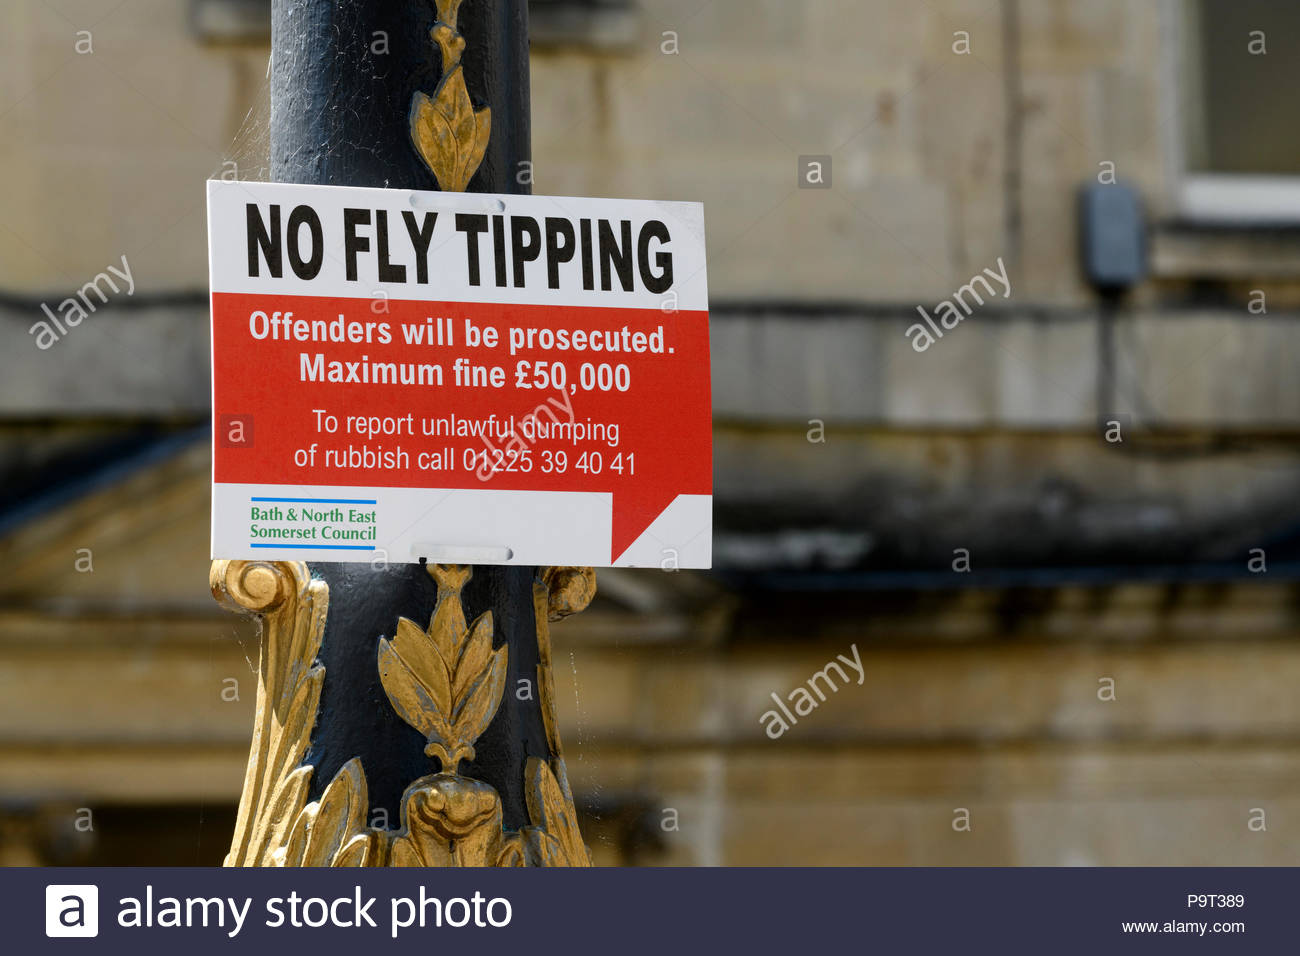 No Fly tipping sign, Bath, Somerset, England, UK - Stock Image